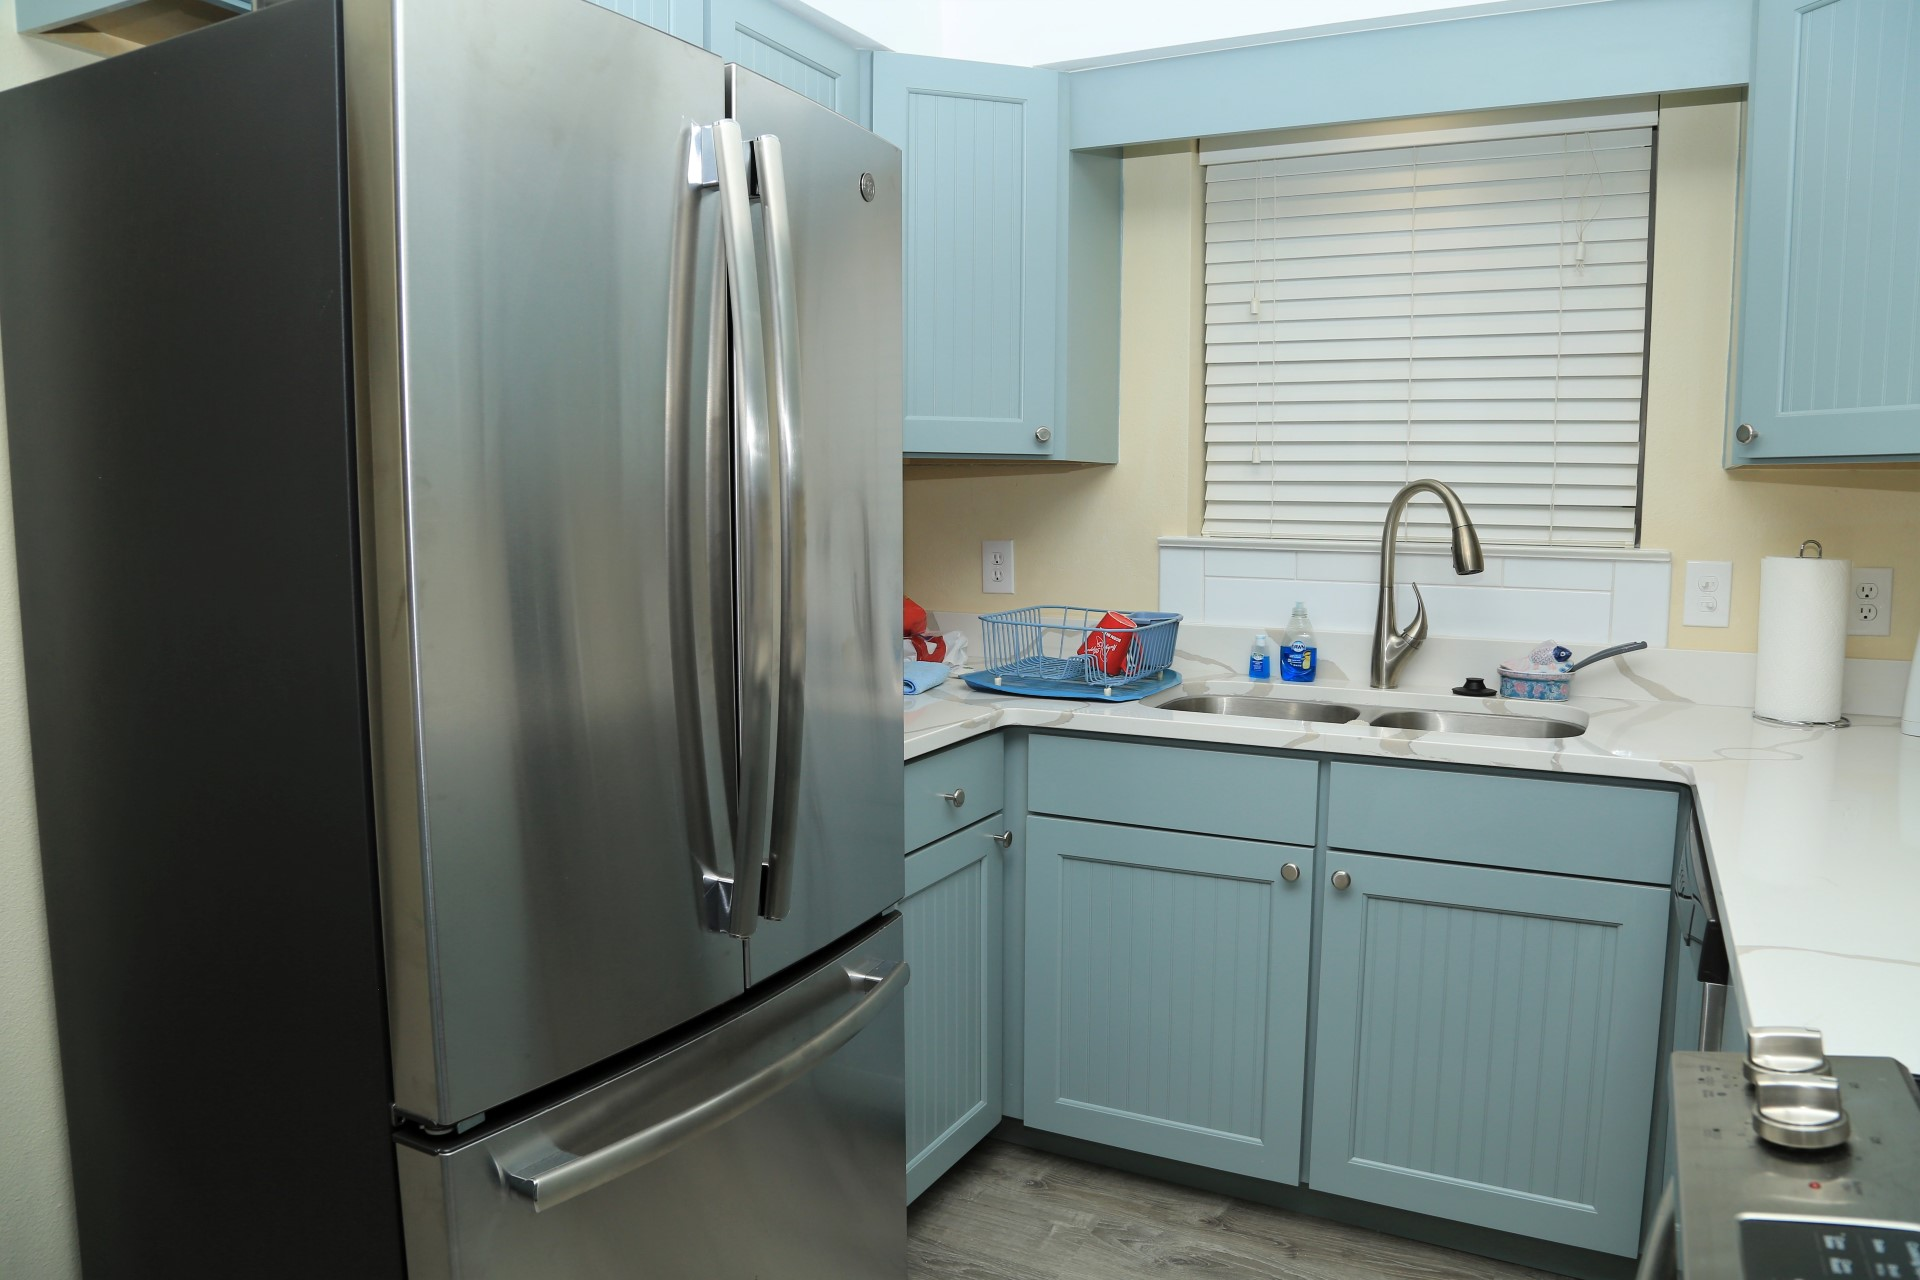 New, quality stainless steel appliances!